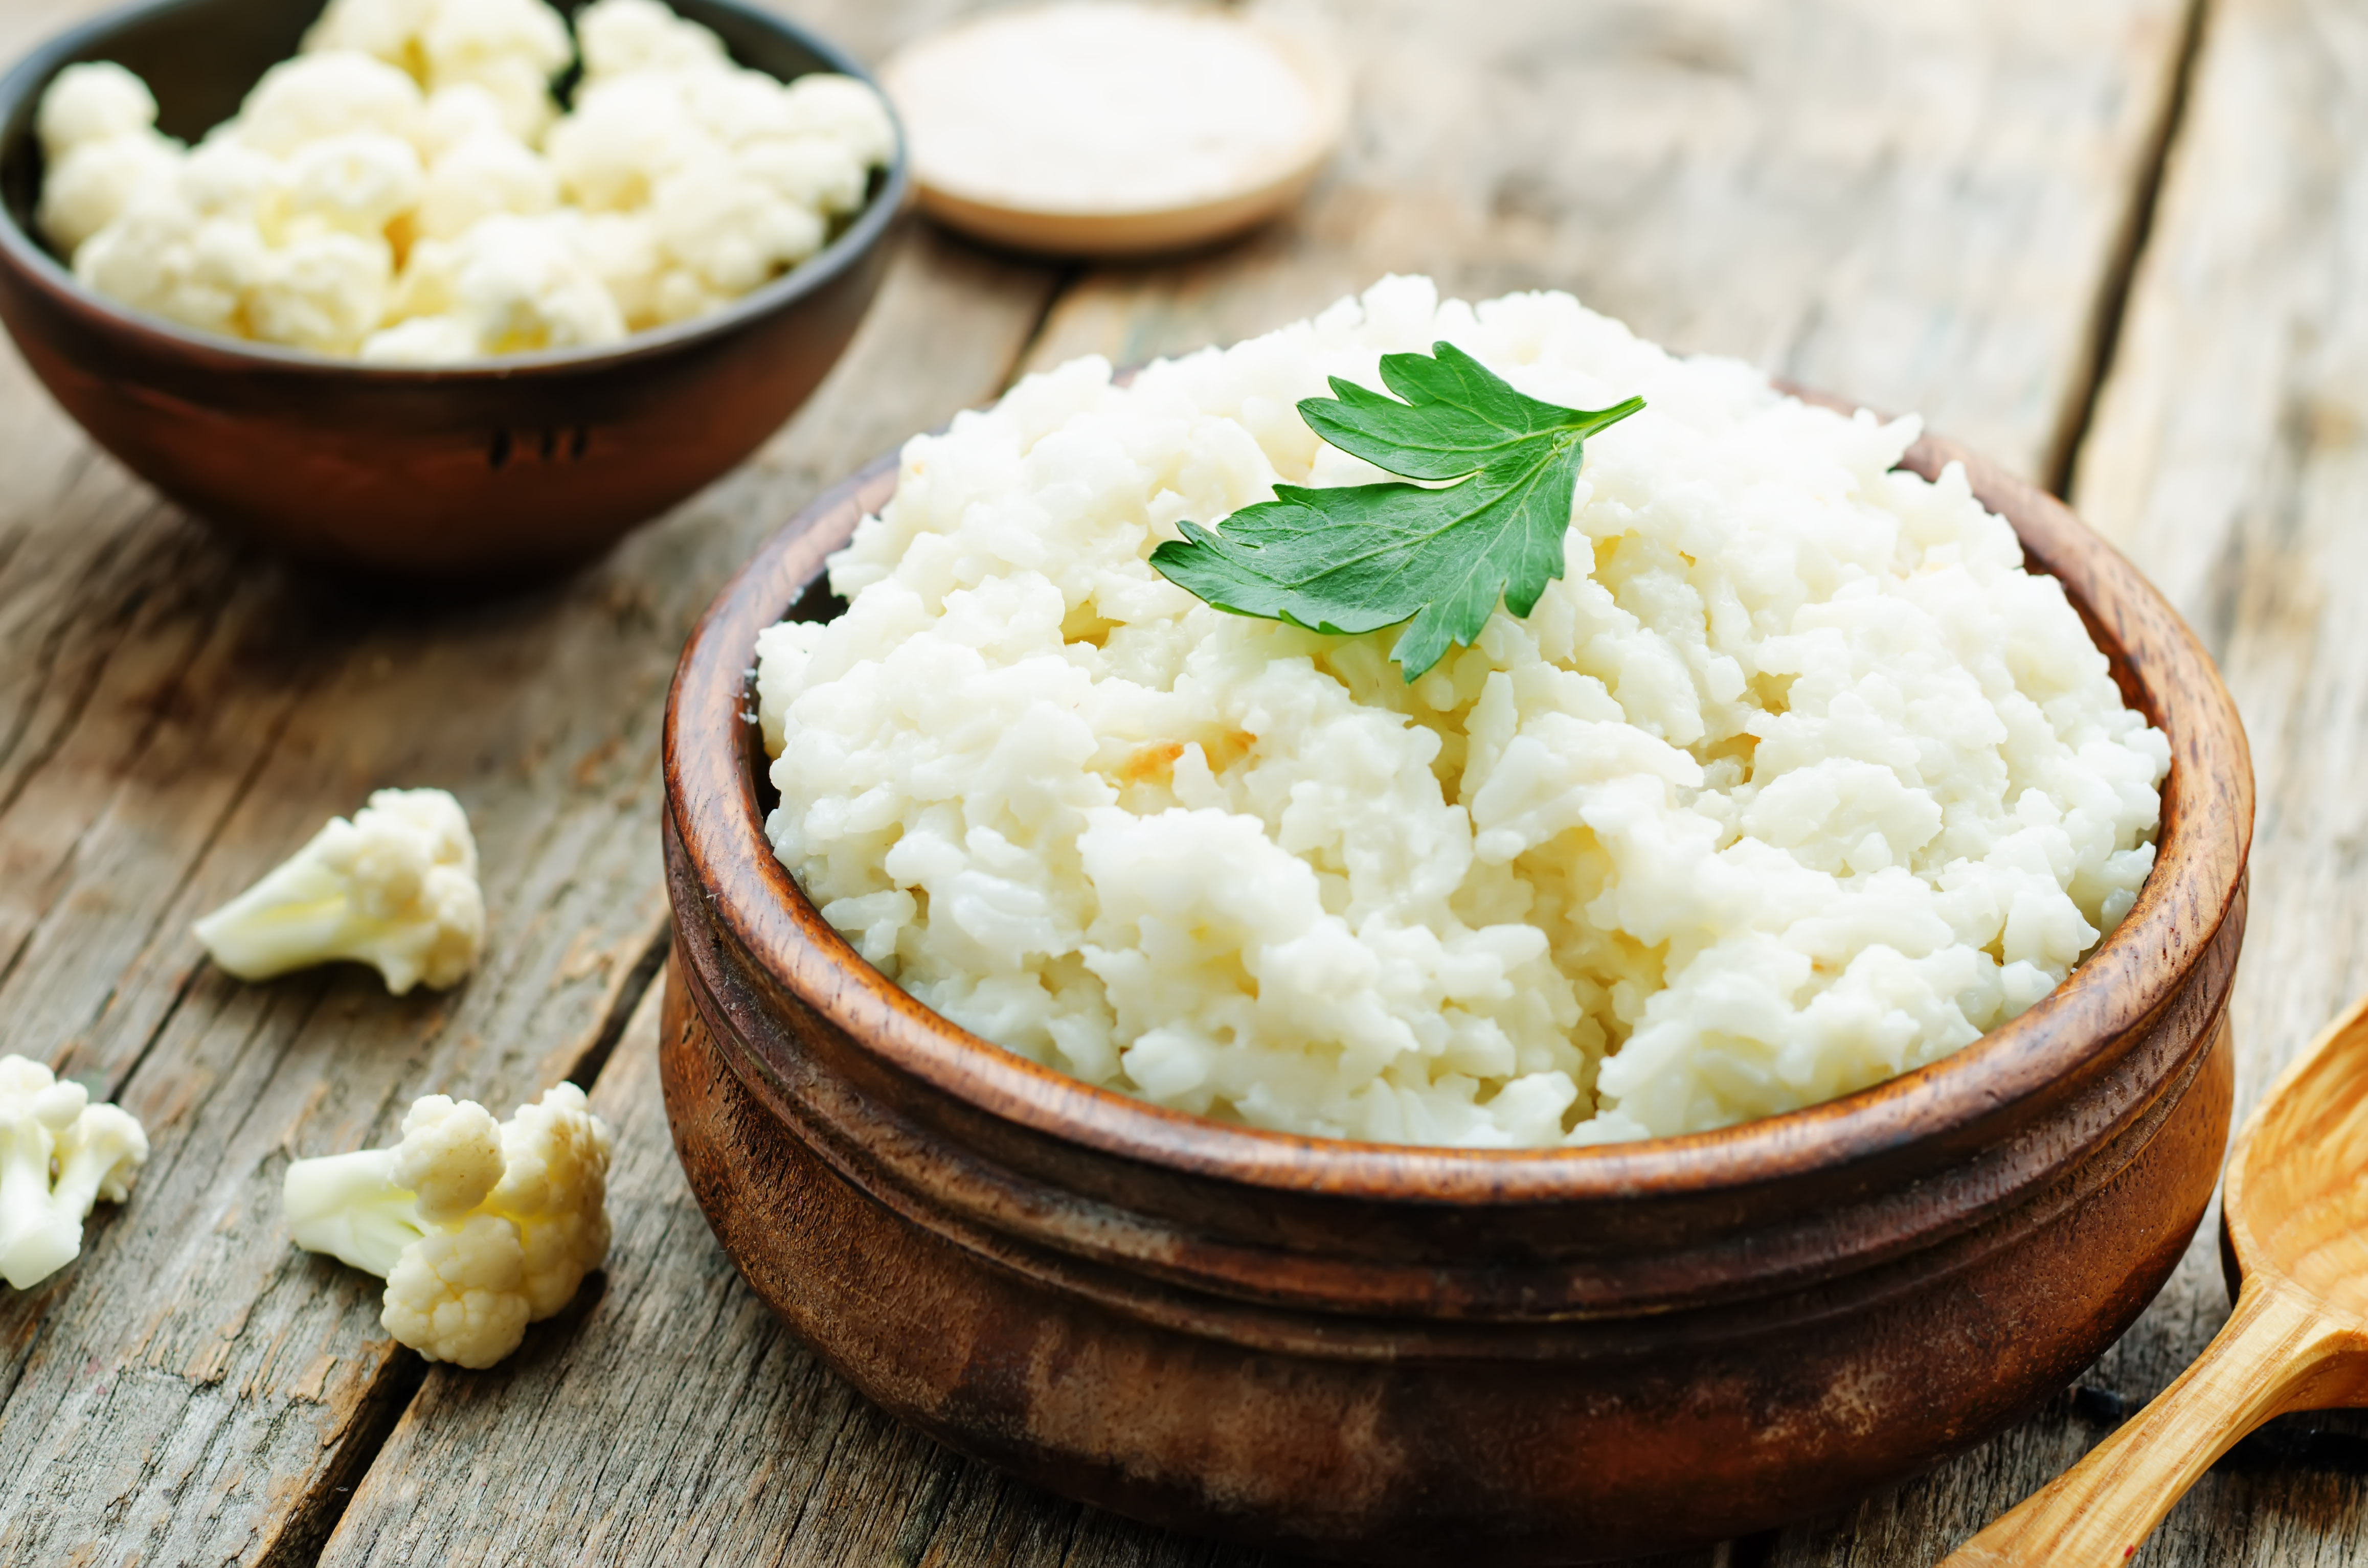 Cauliflower Rice in Wooden Bowl on Table